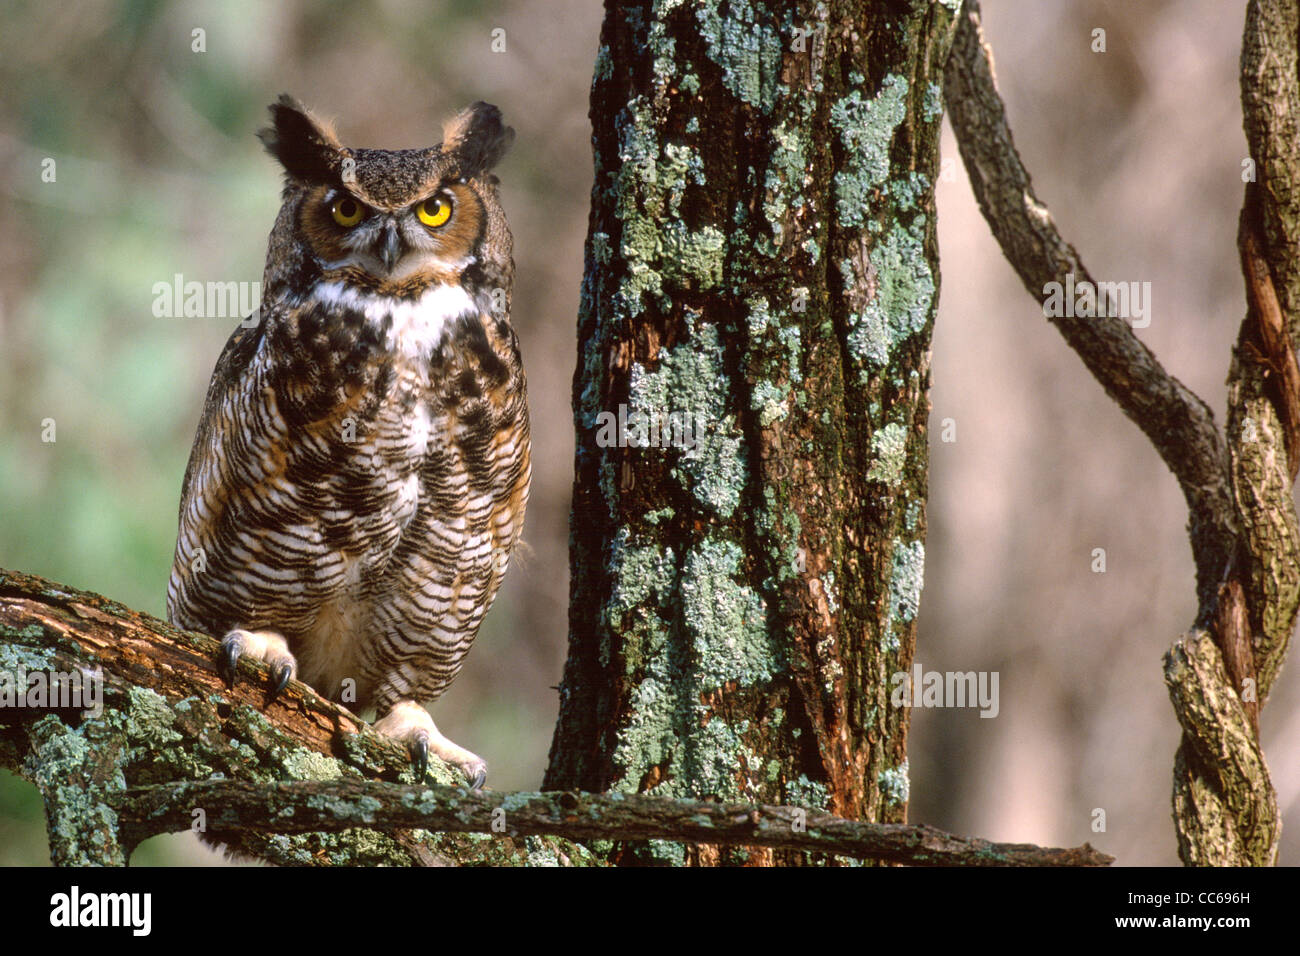 Great-horned Owl - Stock Image